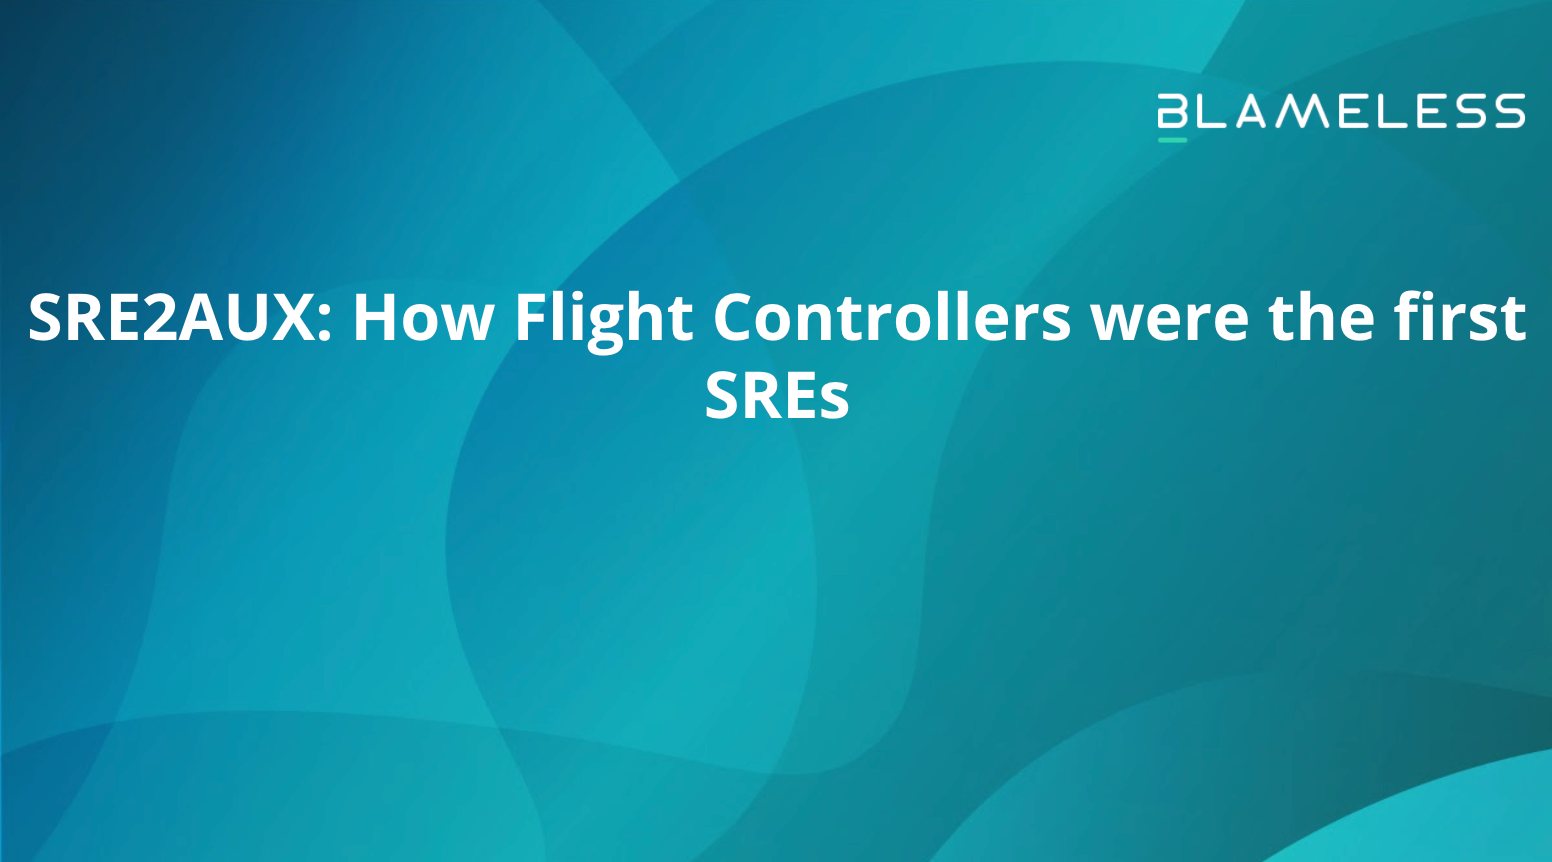 SRE2AUX: How Flight Controllers were the first SREs